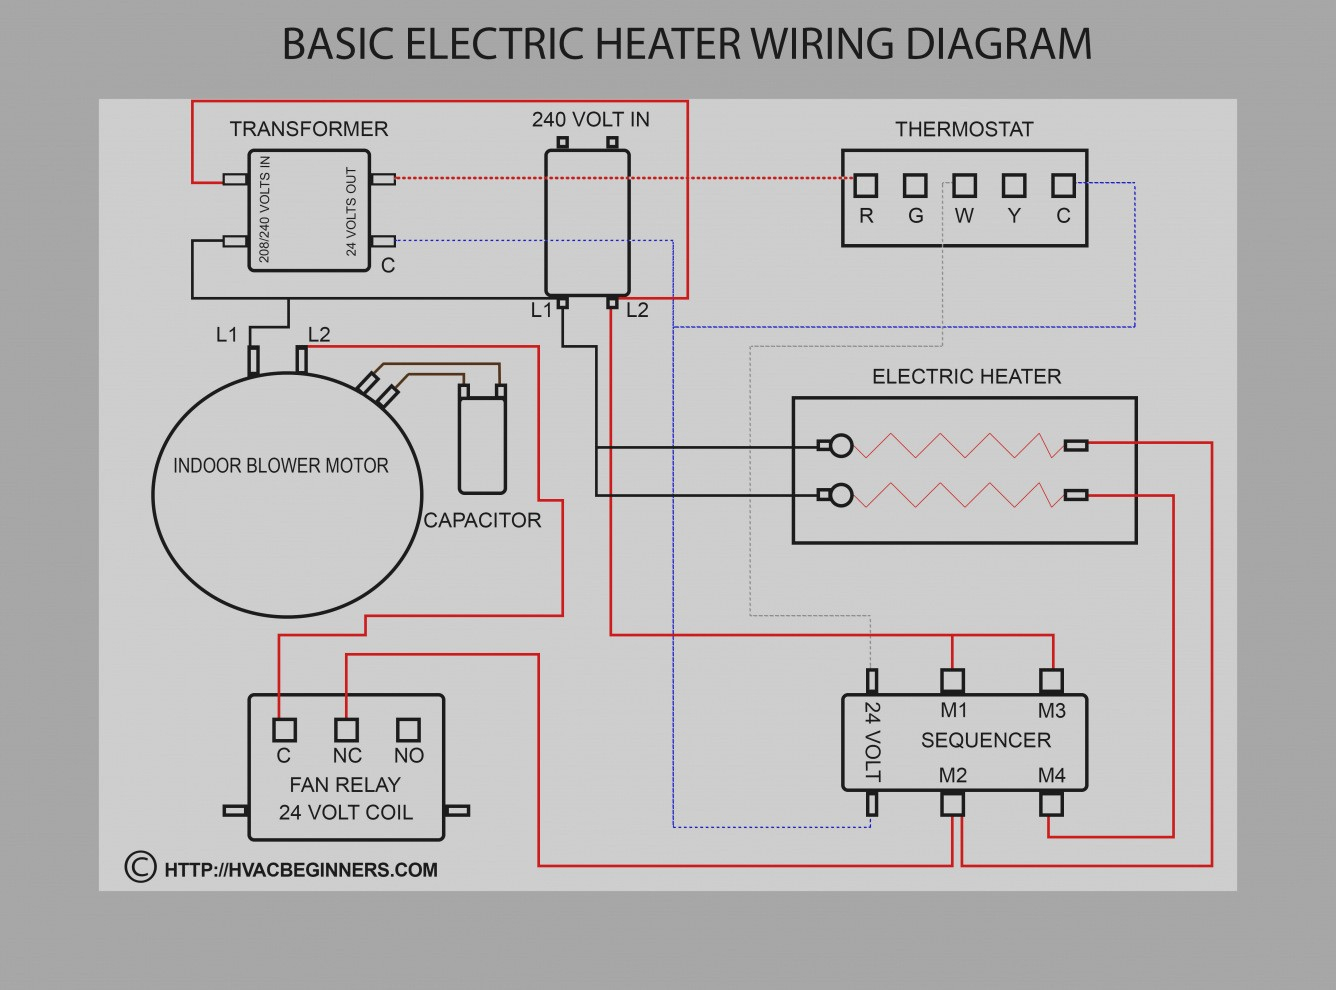 24V Fan Relay Wiring Diagram | Wiring Library - Heat Sequencer Wiring Diagram